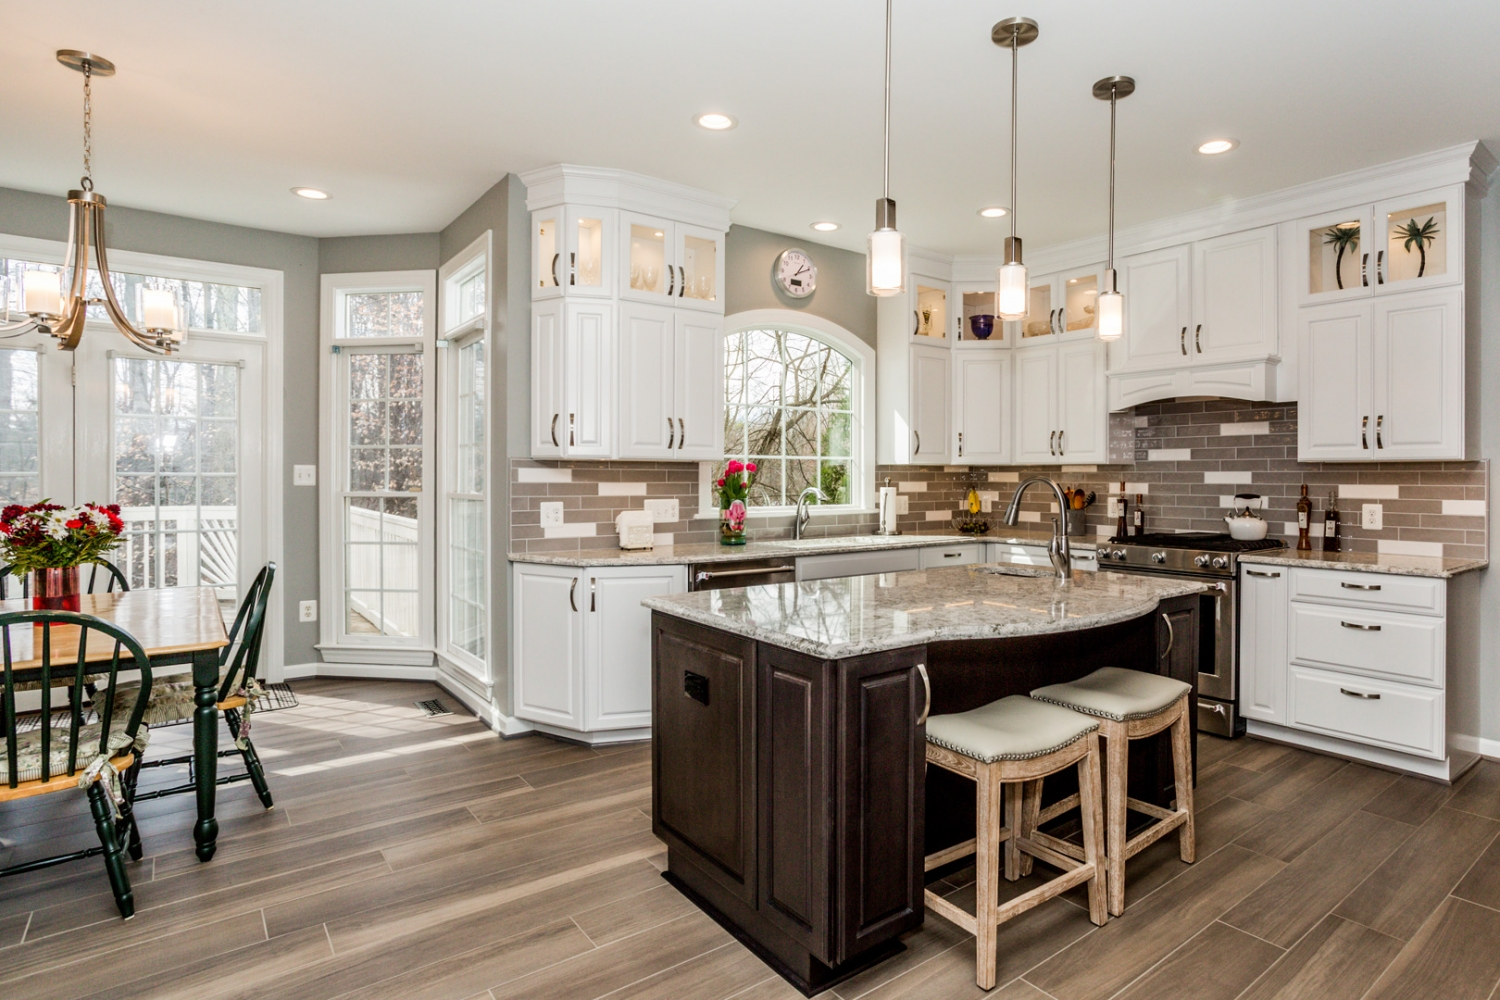 Springfield, VA, custom kitchen remodel with Jim Bishop cabinets and island with Cambria countertops